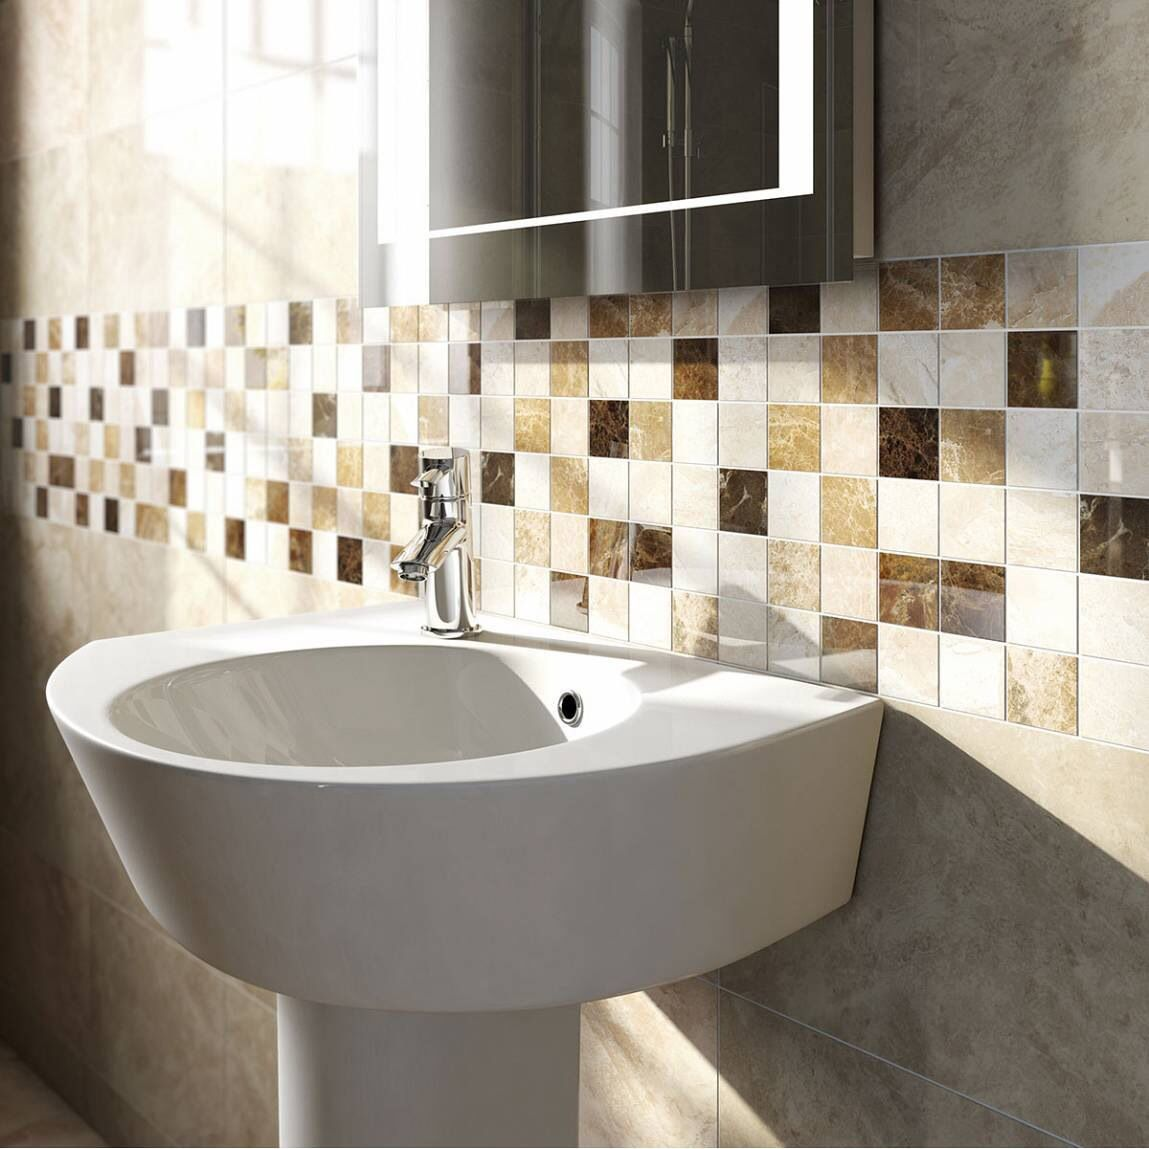 Loving these mosaic tiles from Victoria Plumb | Inspirational ...